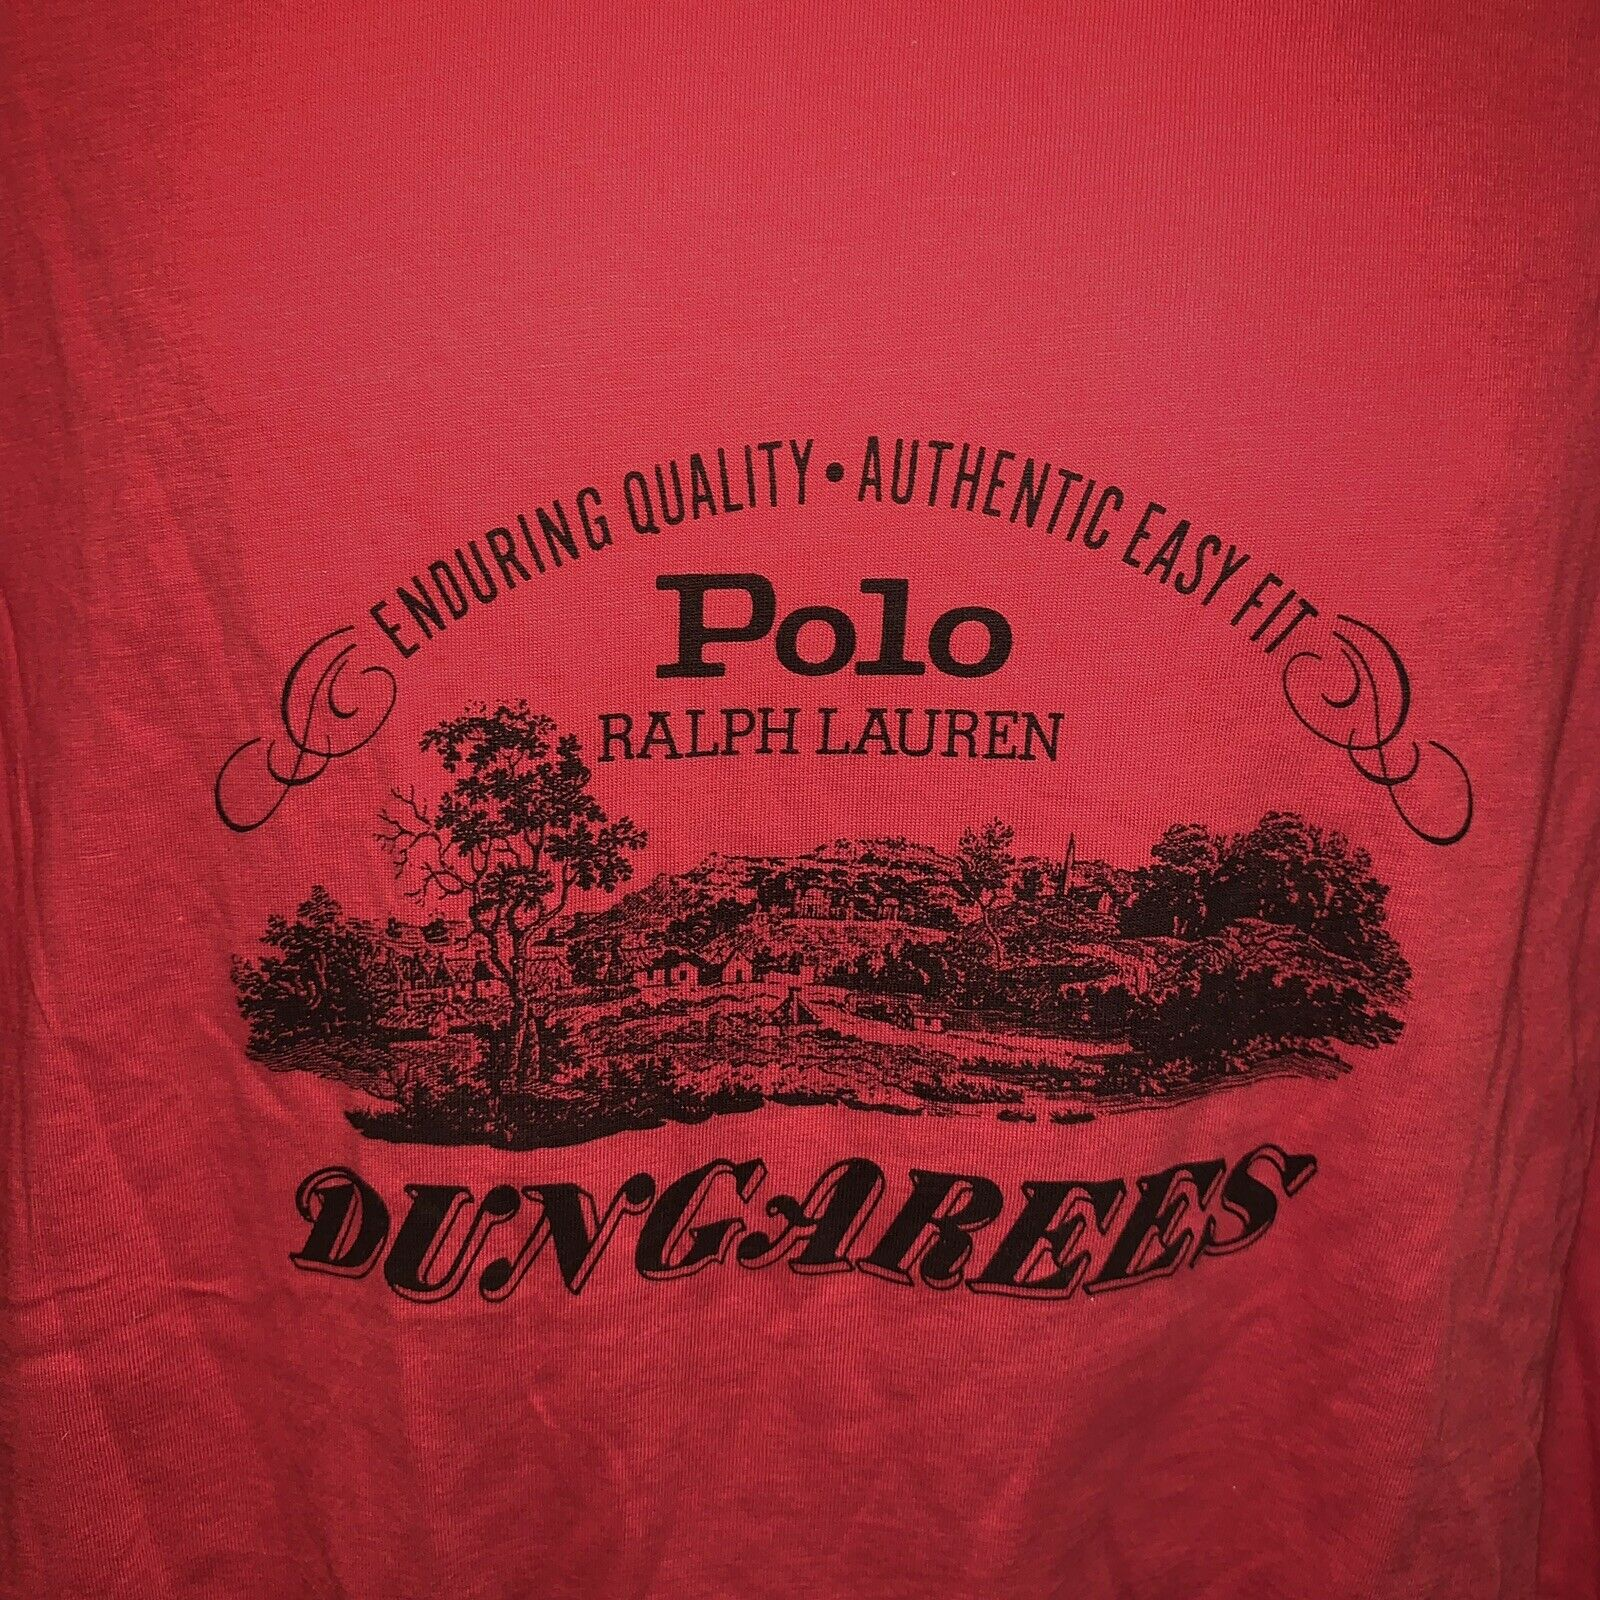 VTG Polo Ralph Lauren Polo Dungarees Graphic T Shi